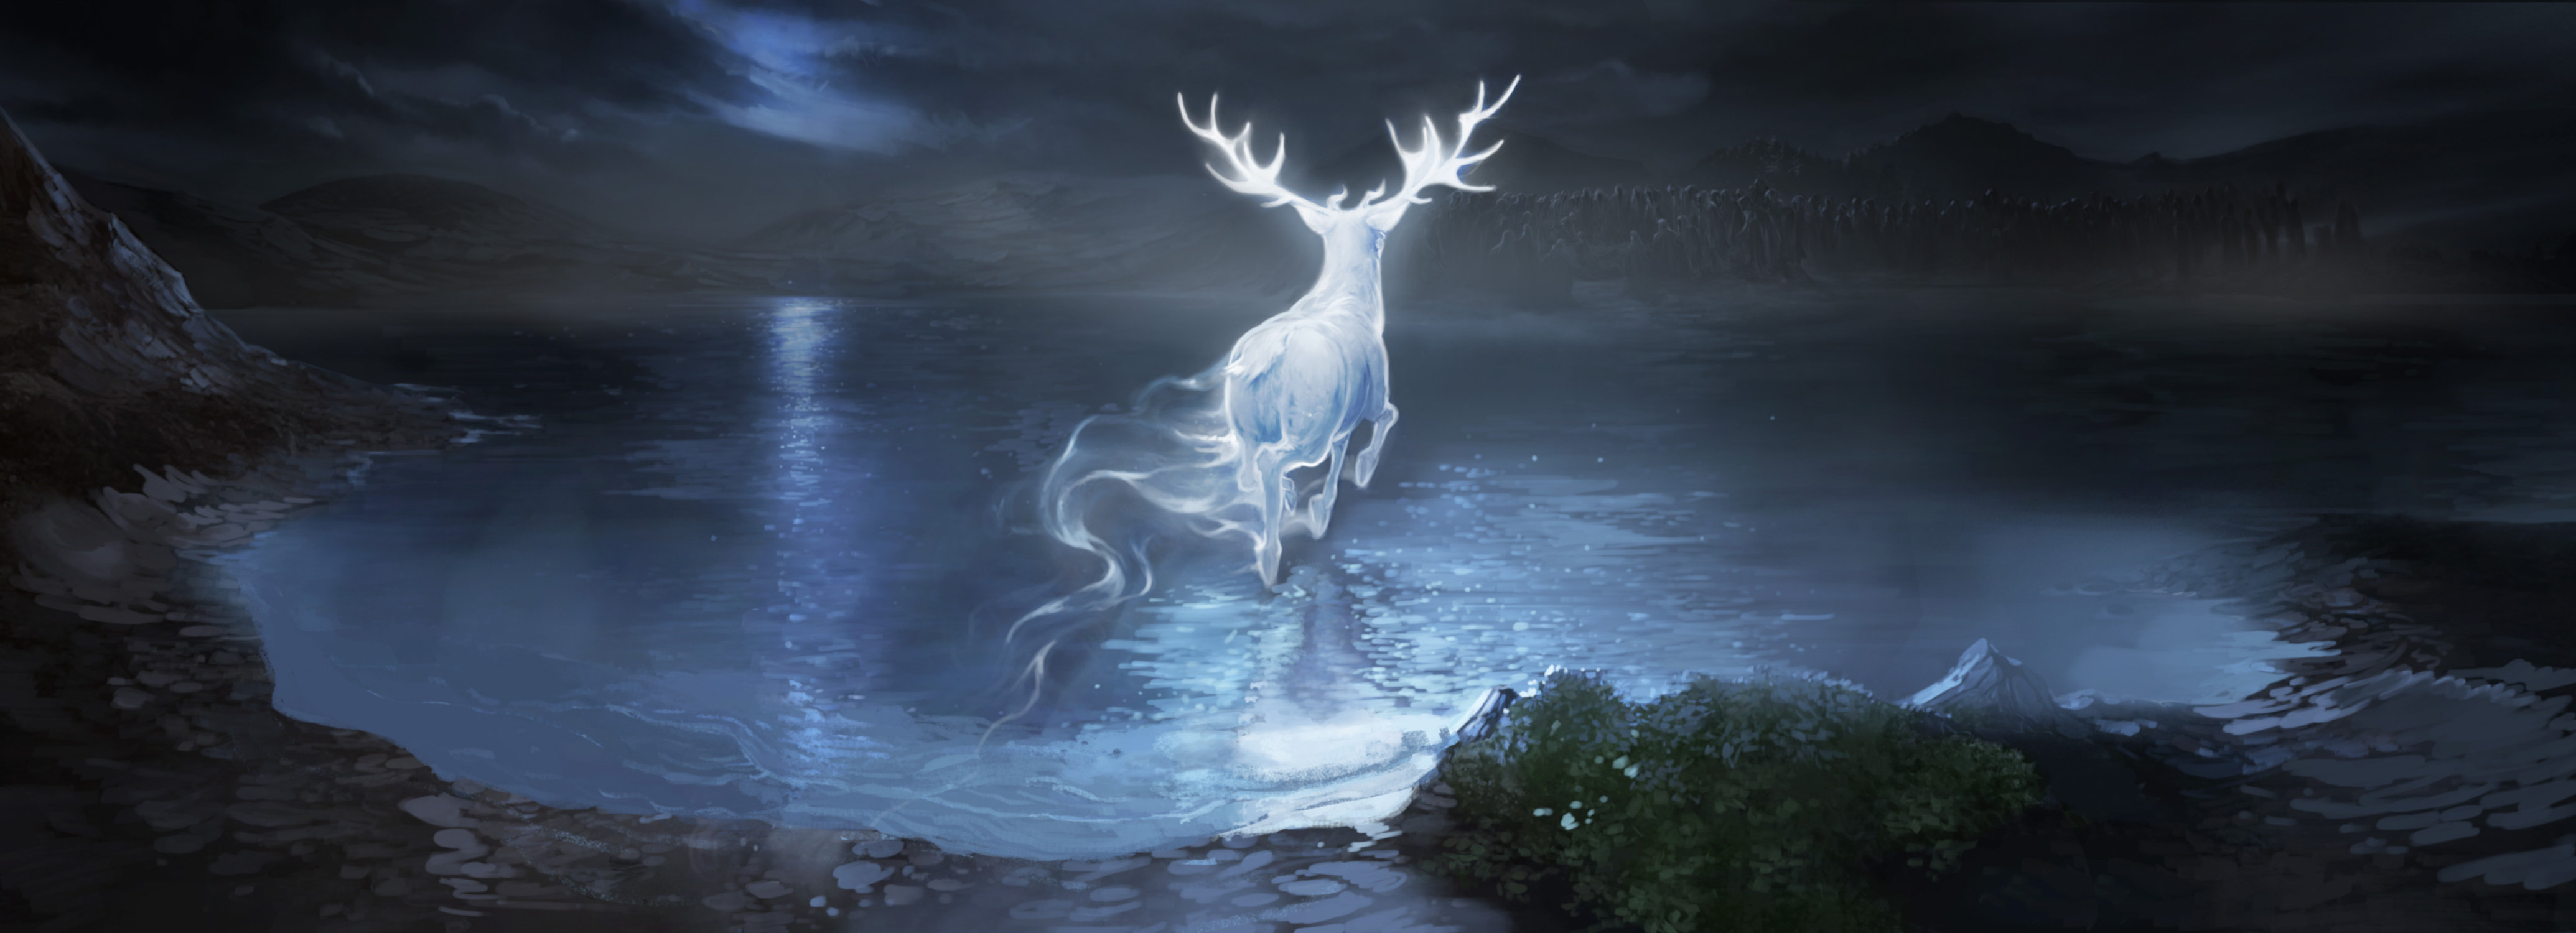 Harry's stag patronus charges across the lake towards the Dementors.